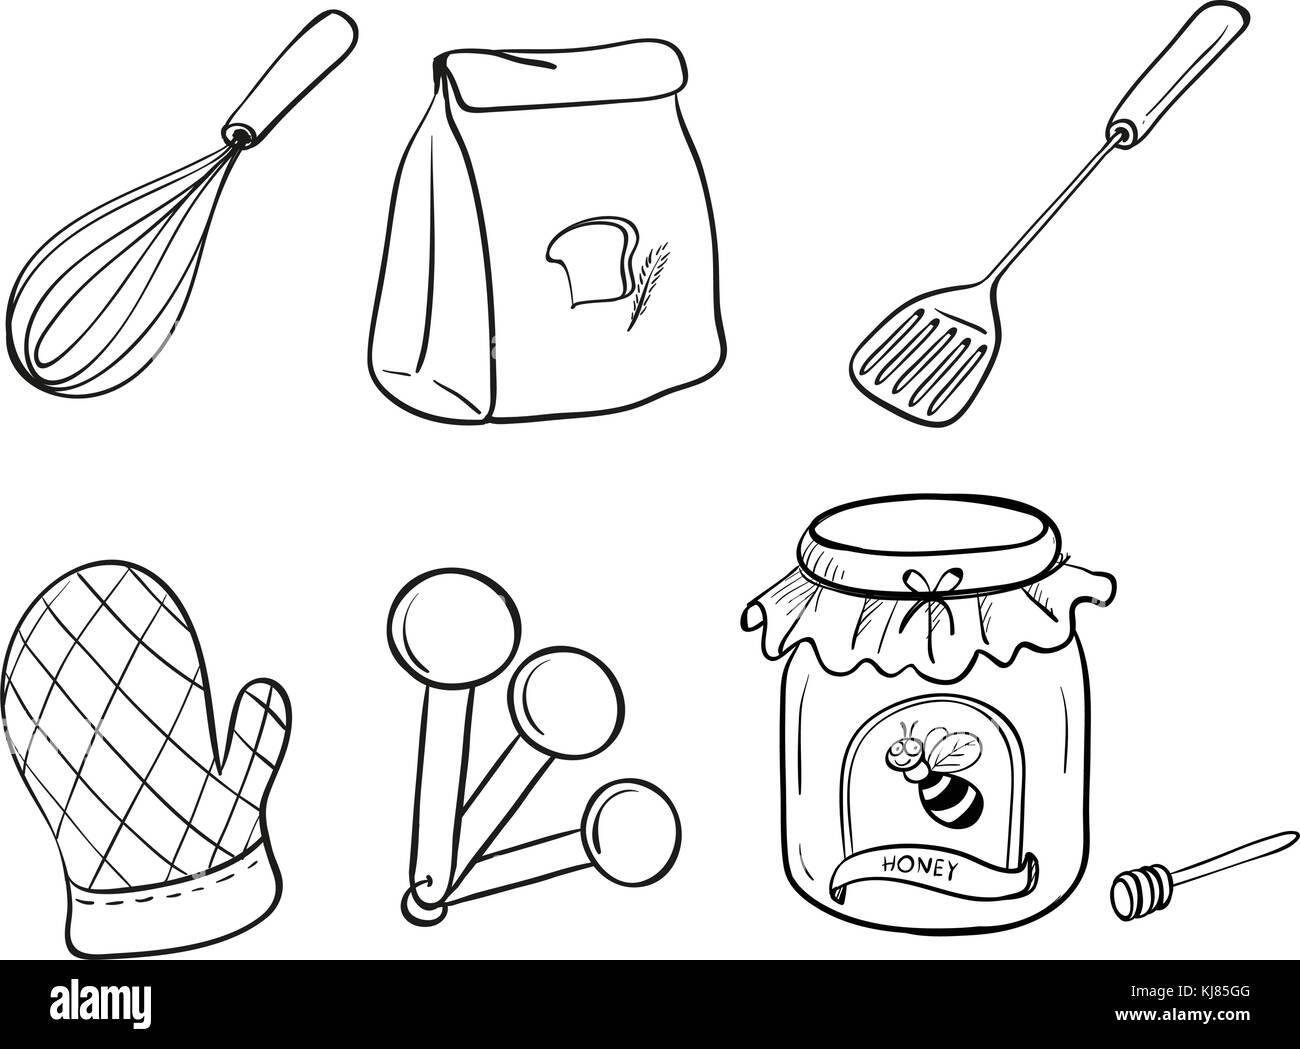 Illustration of a doodle set of kitchen utensils, baking powder and honey jam on a white background - Stock Vector